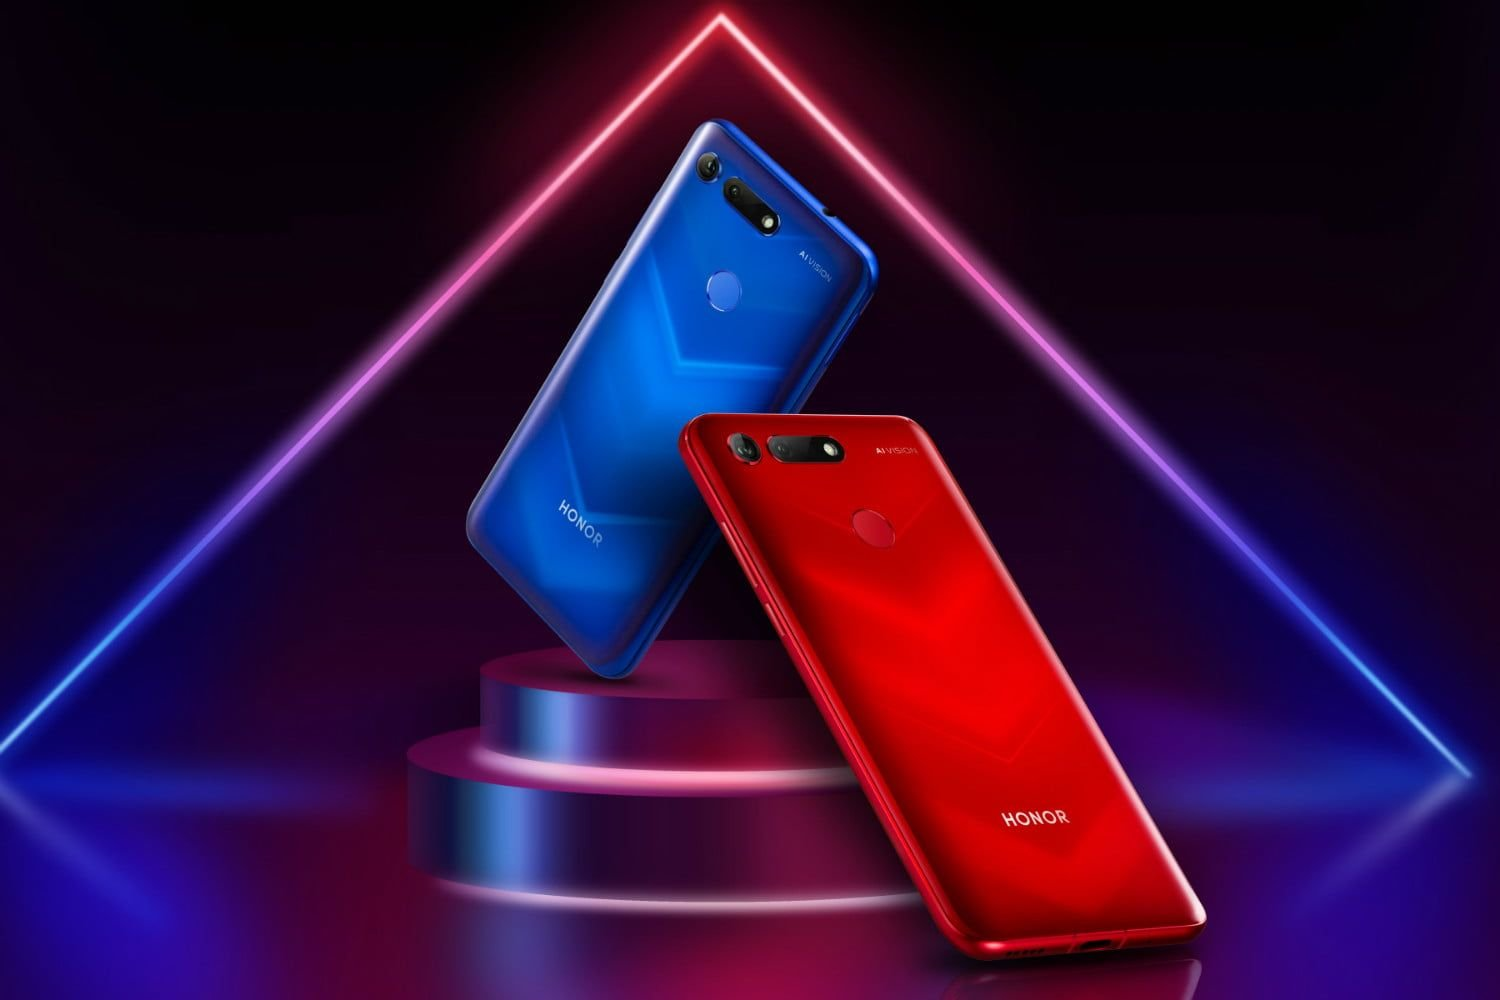 Download Honor View 20 Themes for Huawei / Honor EMUI Phones